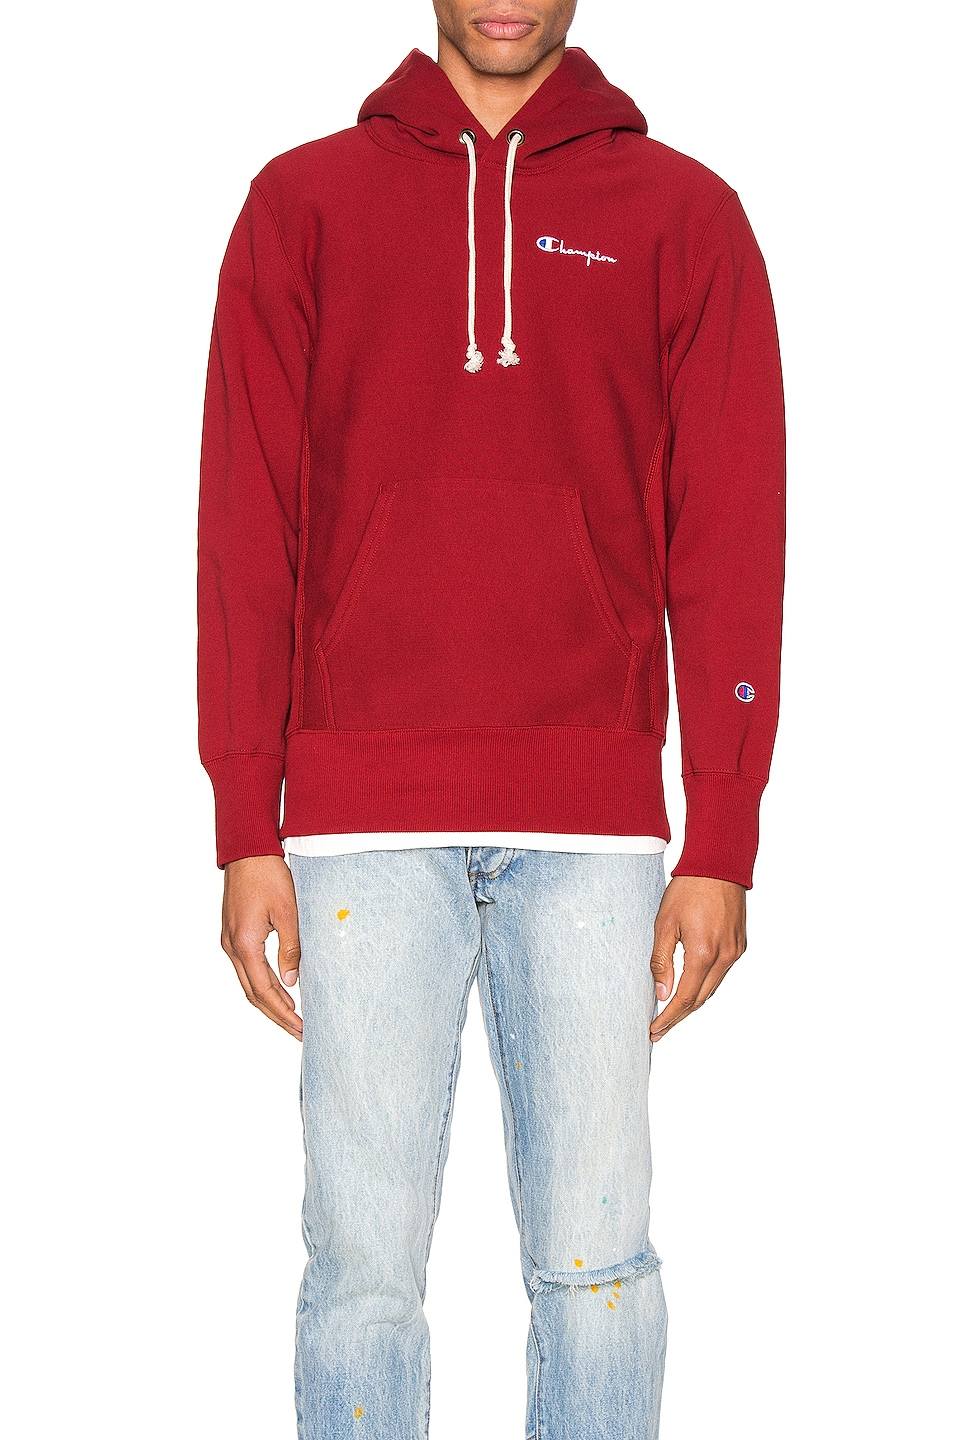 Image 1 of Champion Reverse Weave Small Script Hooded Sweatshirt in Scarlet